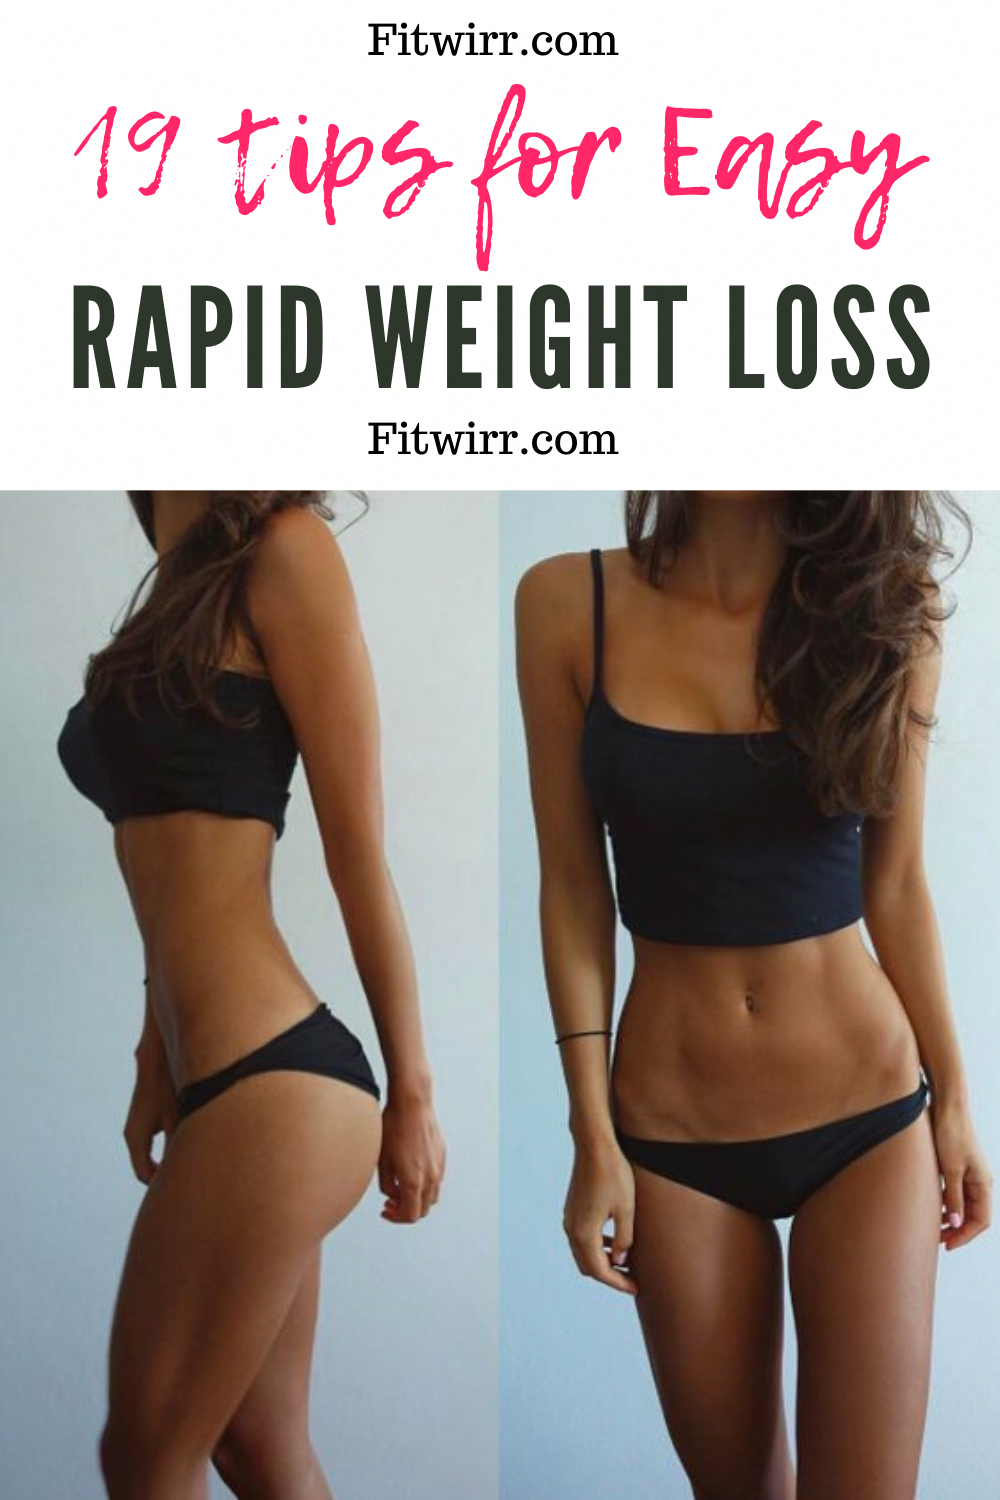 19 tips to lose 10 lbs in a month. This fast weight loss guide is perfect for anyone looking for rapid weight loss.  #rapidweightloss #lose10pounds #loseweightfast #fastweightloss #weightlosstips #3DayDetox